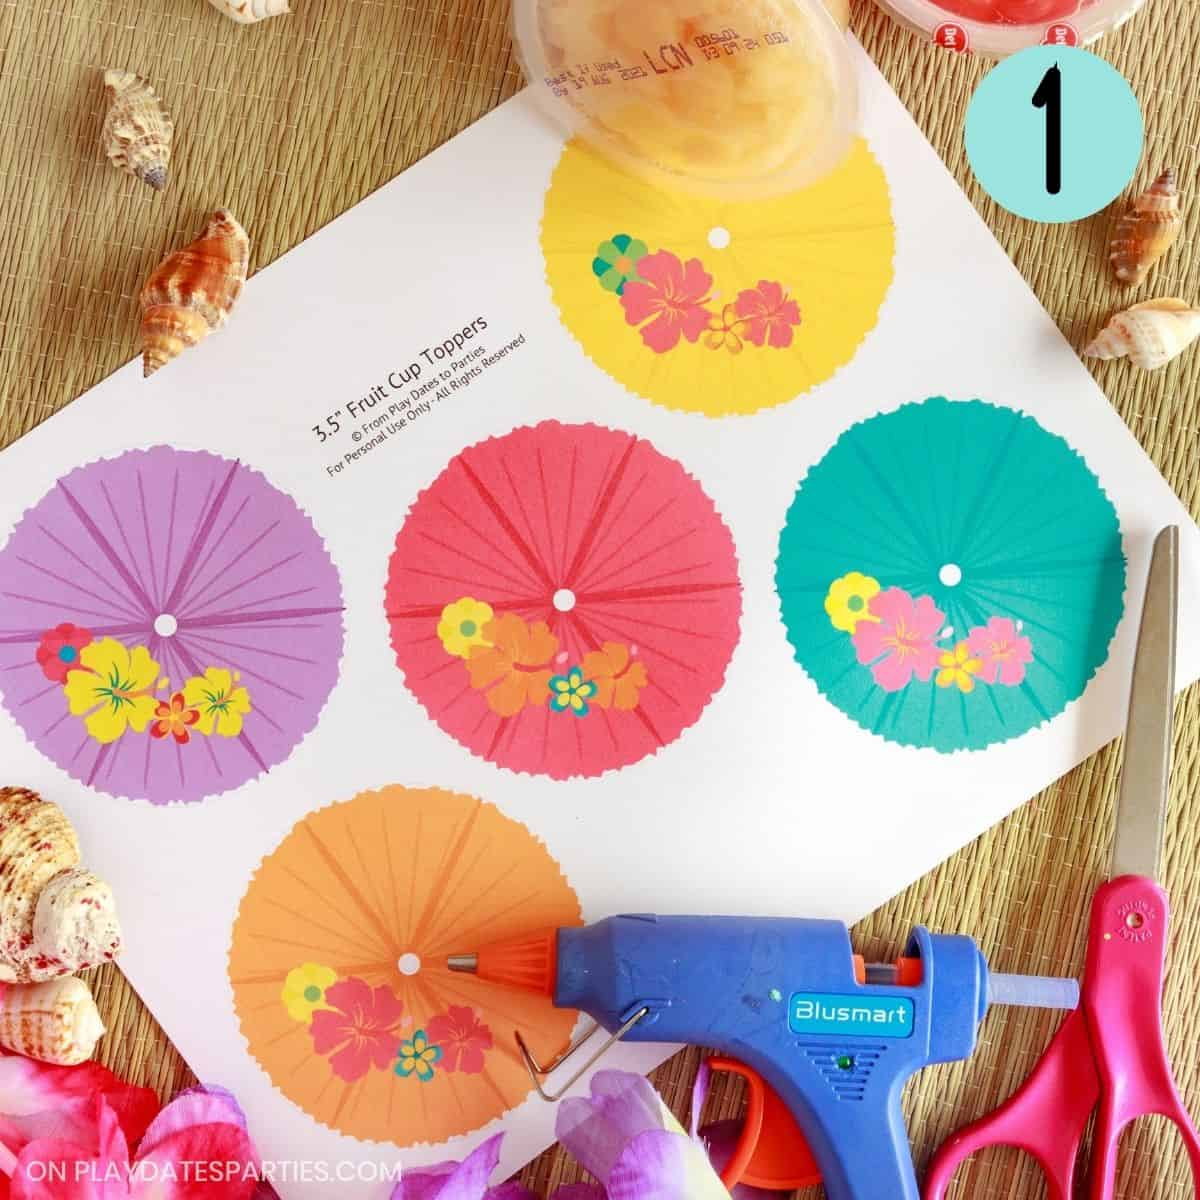 fruit cup labels step 1 - print the design and gather supplies